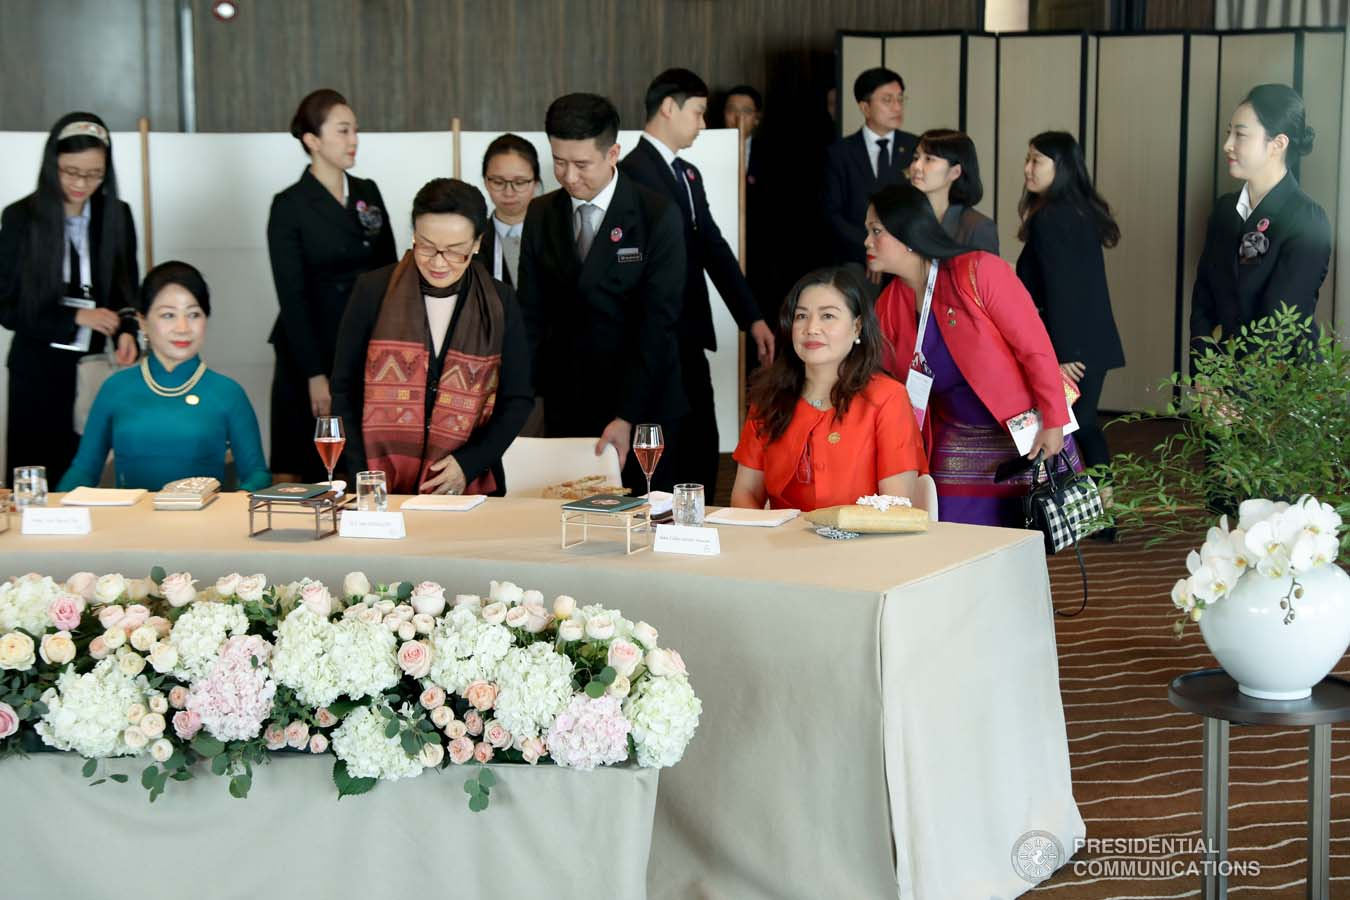 President Rodrigo Roa Duterte's partner Cielito Avanceña joins the spouses of the leaders from the Association of Southeast Asian Nations (ASEAN) member countries and Republic of Korea (ROK) President Moon Jae-in during the luncheon meeting at the Busan Exhibition and Convention Center on November 26, 2019. ROBINSON NIÑAL JR./PRESIDENTIAL PHOTO